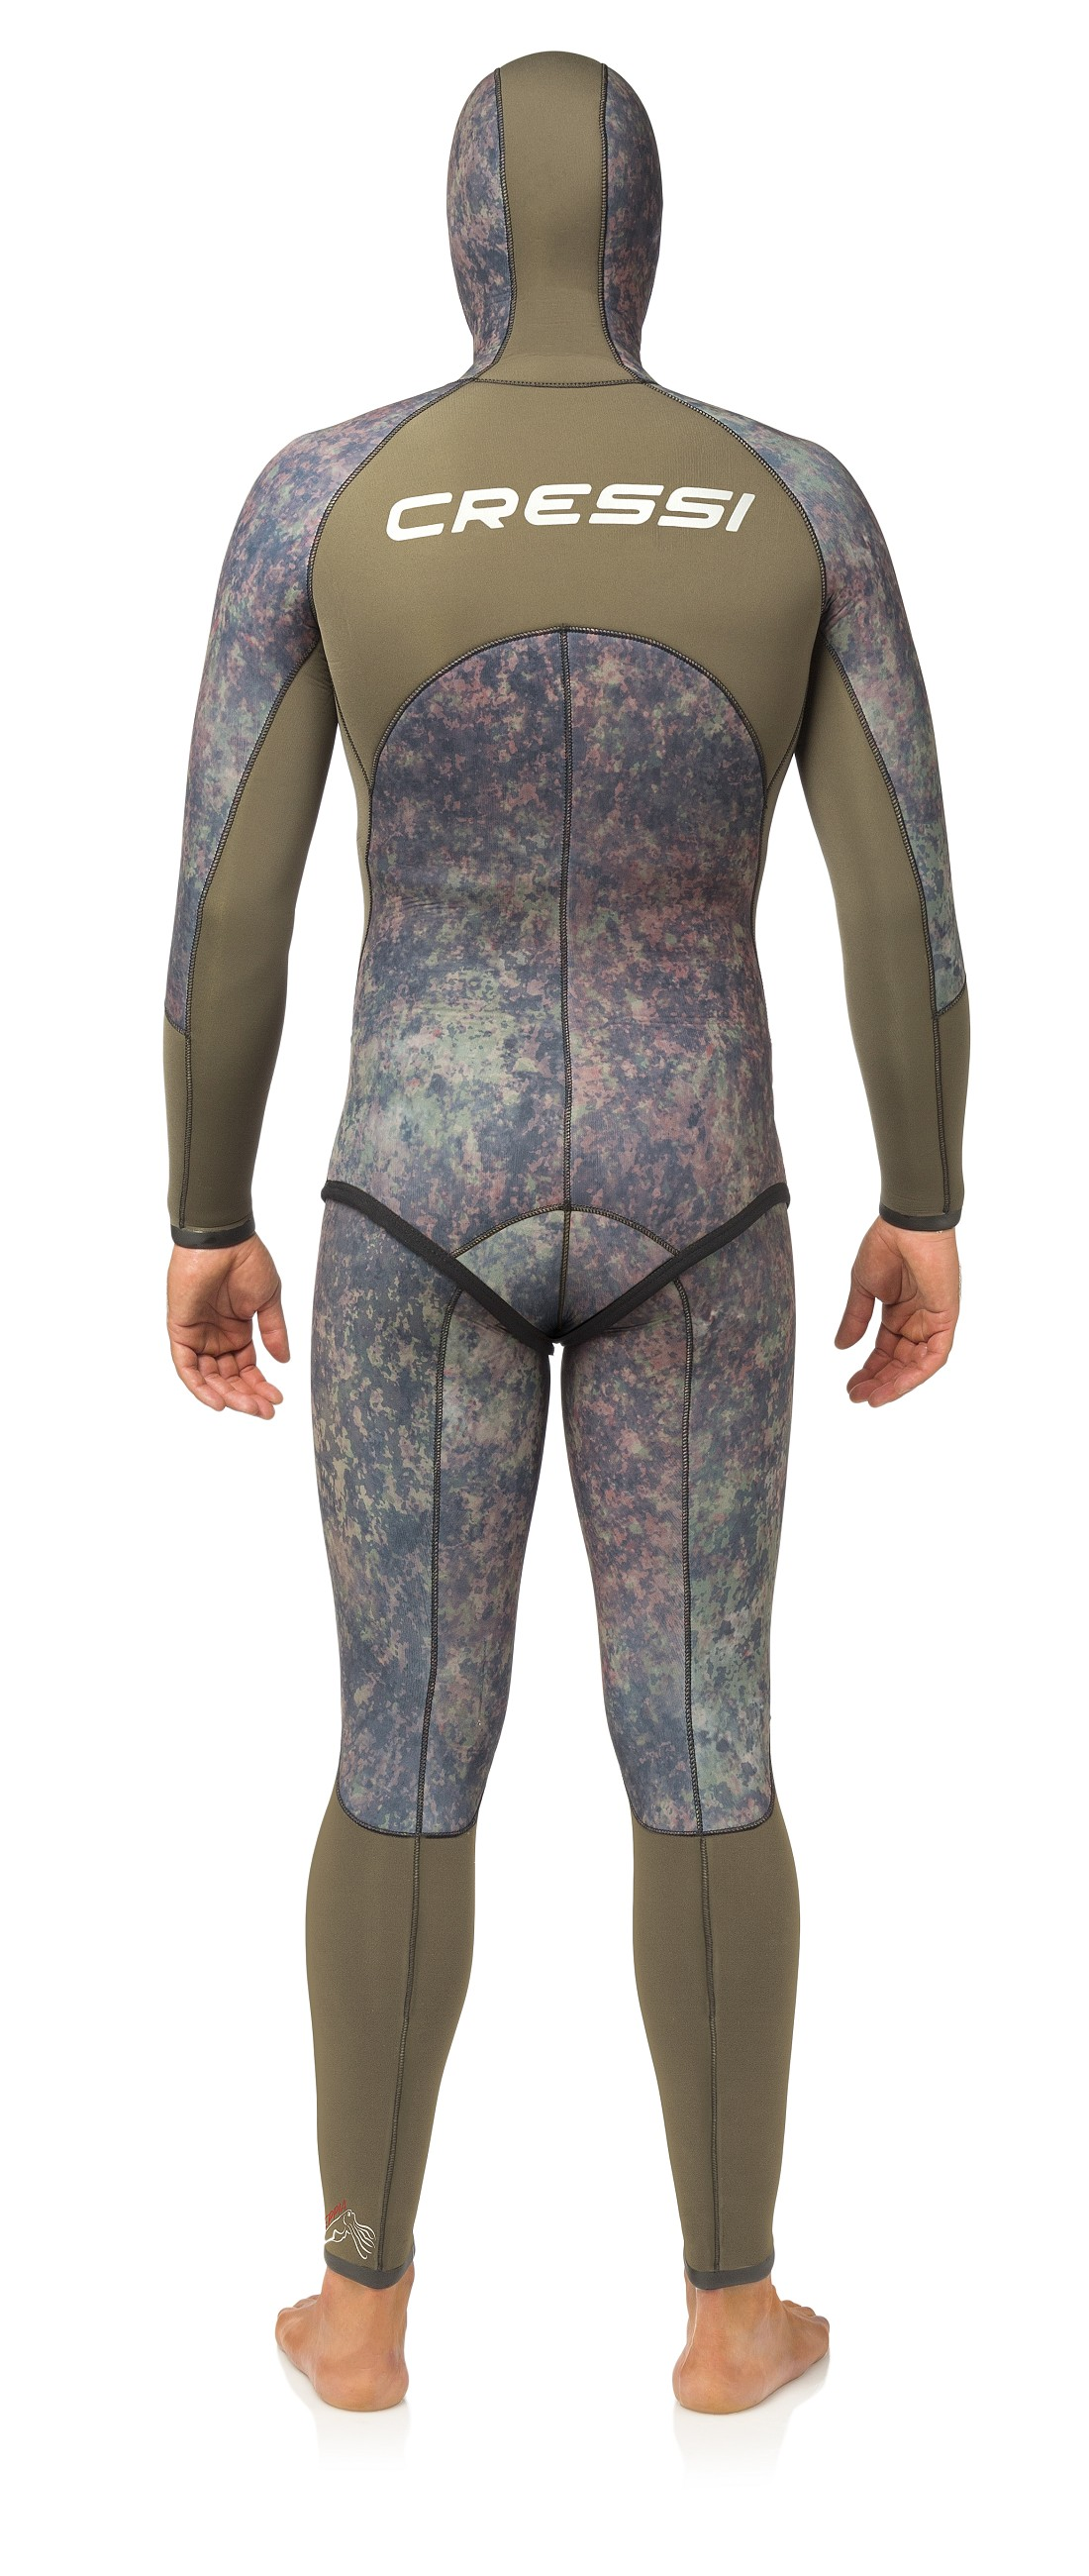 Seppia Man wetsuit available in: 3.5 mm, 5 mm, 7 mm